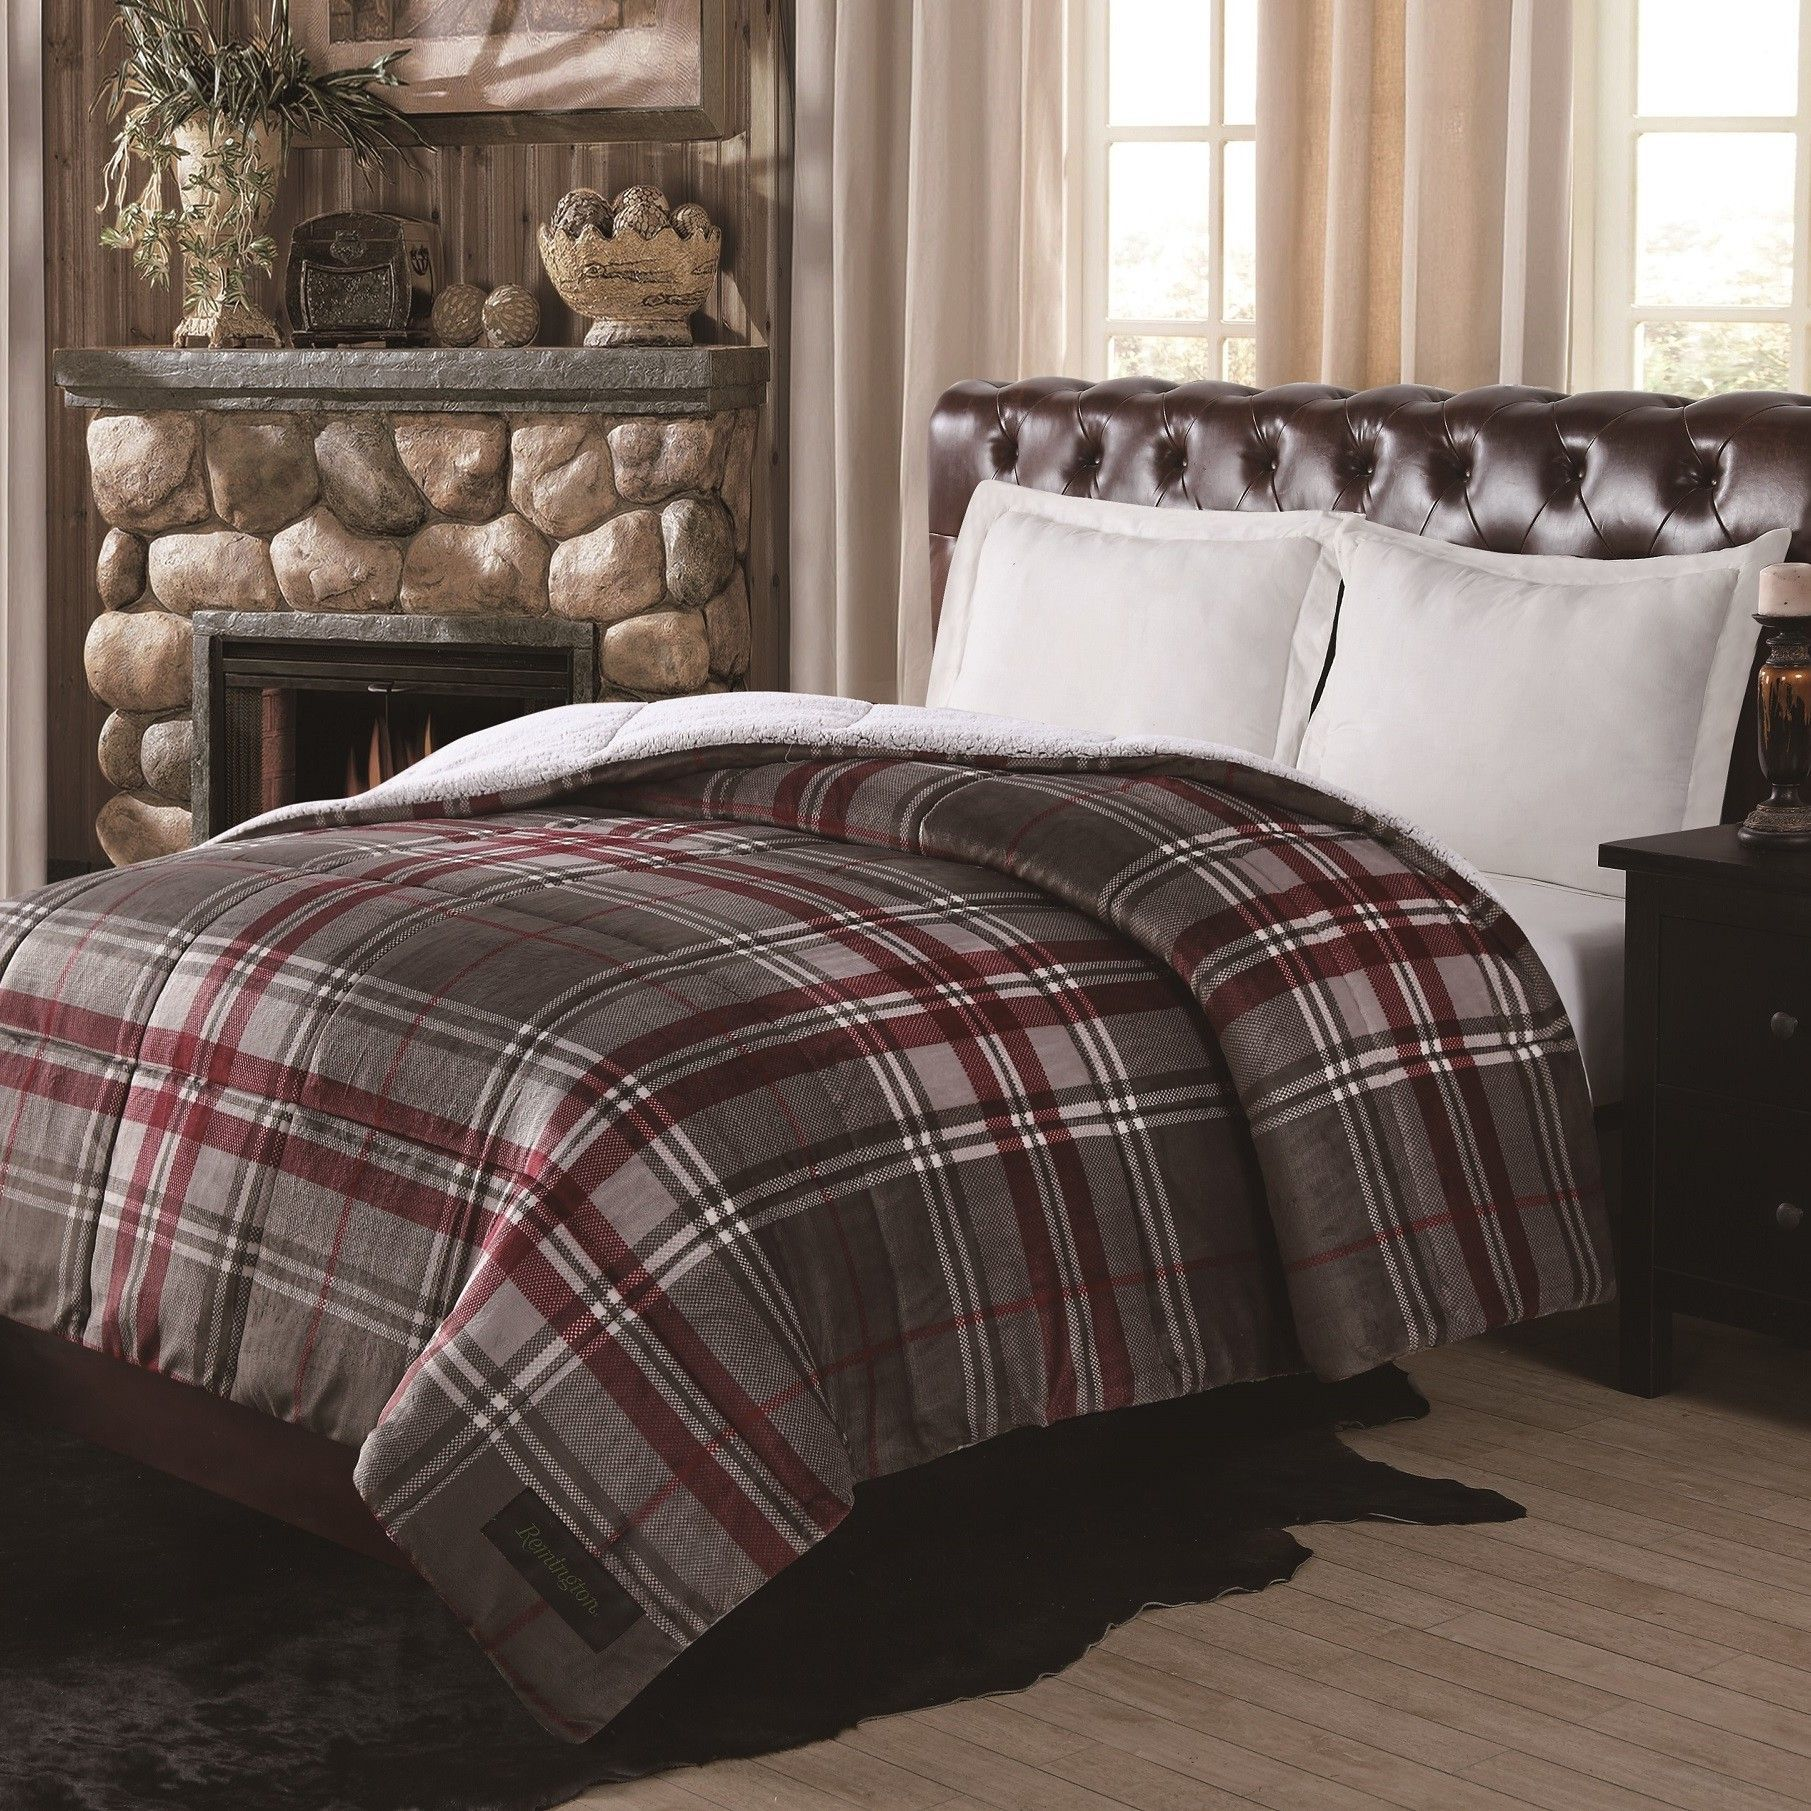 quilt comforter gingham bedspread with check checkered and bedding white buffalo style literarywondrous ease cream red beige